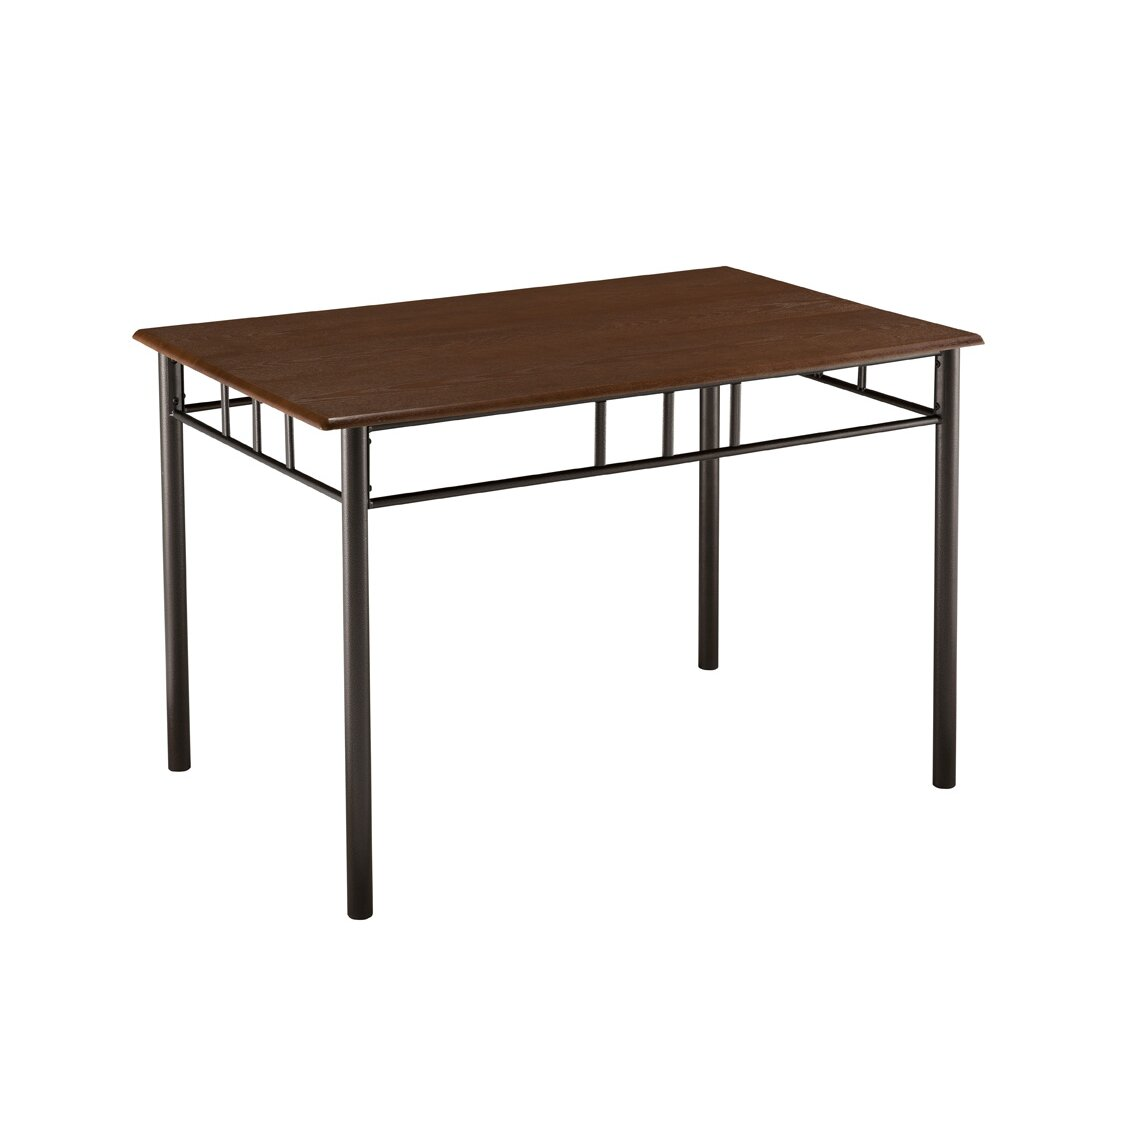 Inroom designs dining table reviews wayfair In room designs